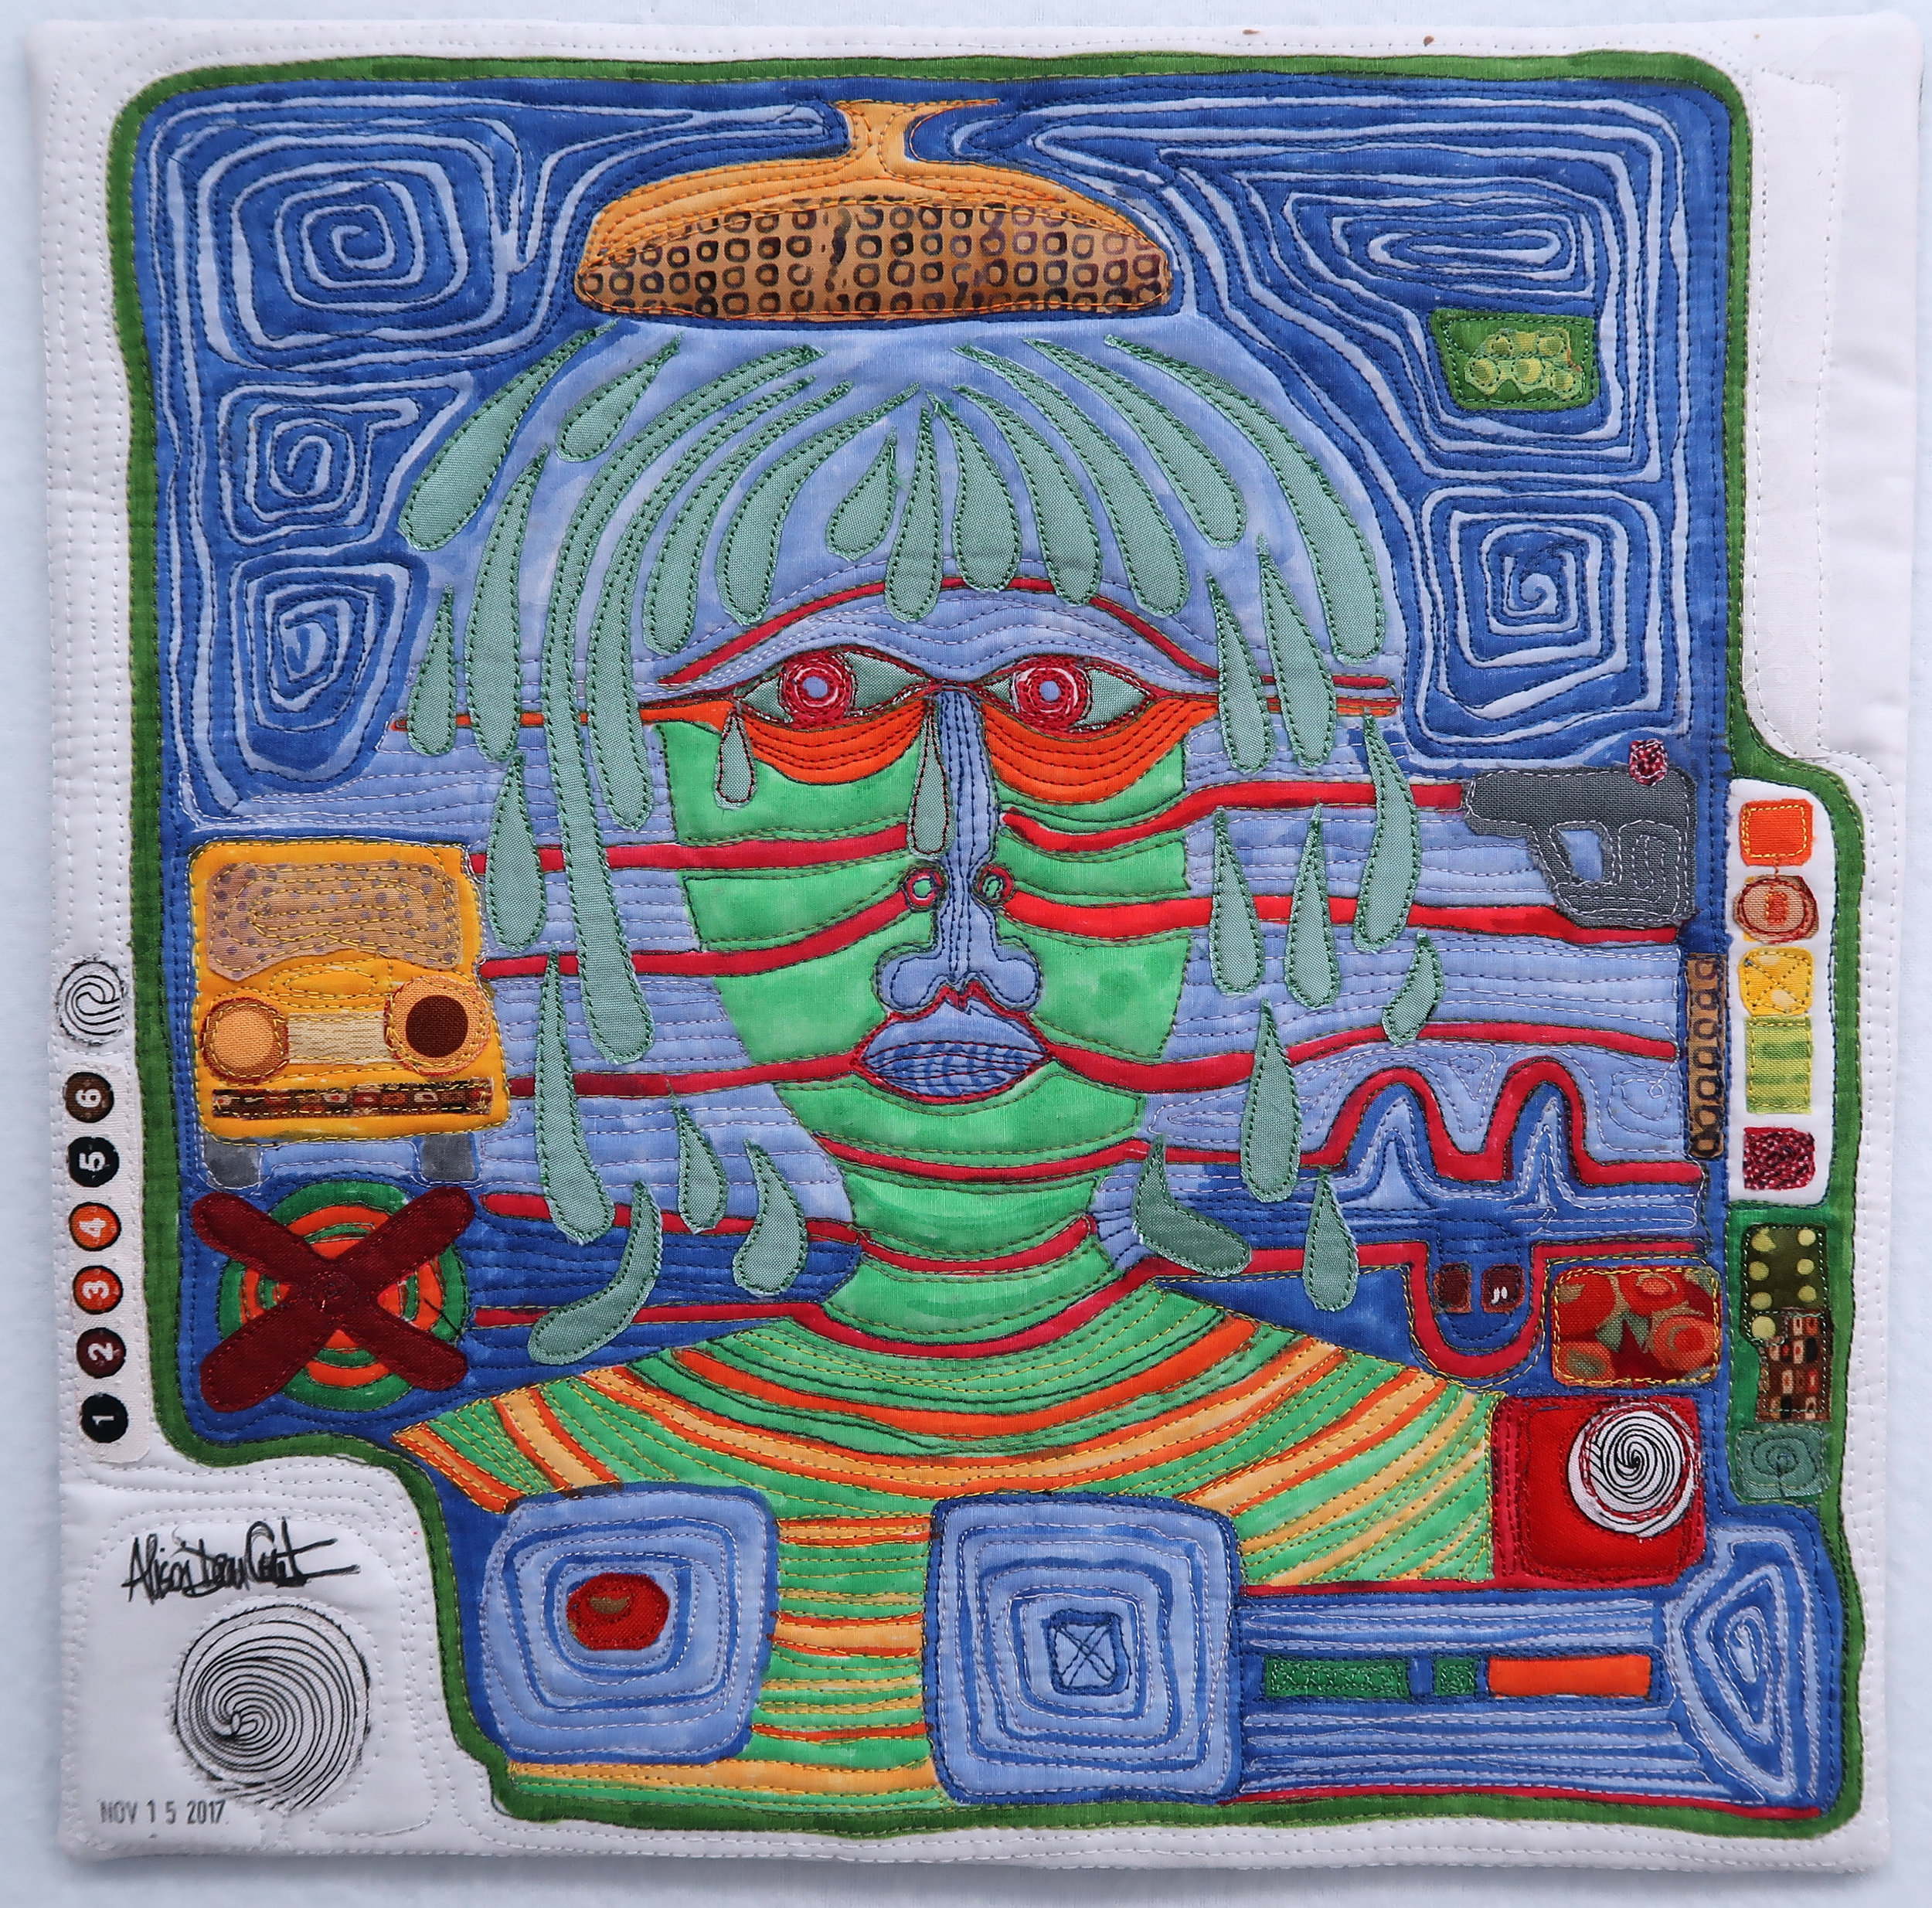 """Dying into now - 12"""" x 12"""" - 2018Influenced by the Austrian artist, Hundertwasser, I stood in the shower one day and thought about slowing down in my rushed life. I let the water wash over me and I realized that I can finish my shower and get on with life. I let worry and anxiety wash over my head and naked body, and afterwards I started to doodle what that would look like, in my Hundertwasser way."""